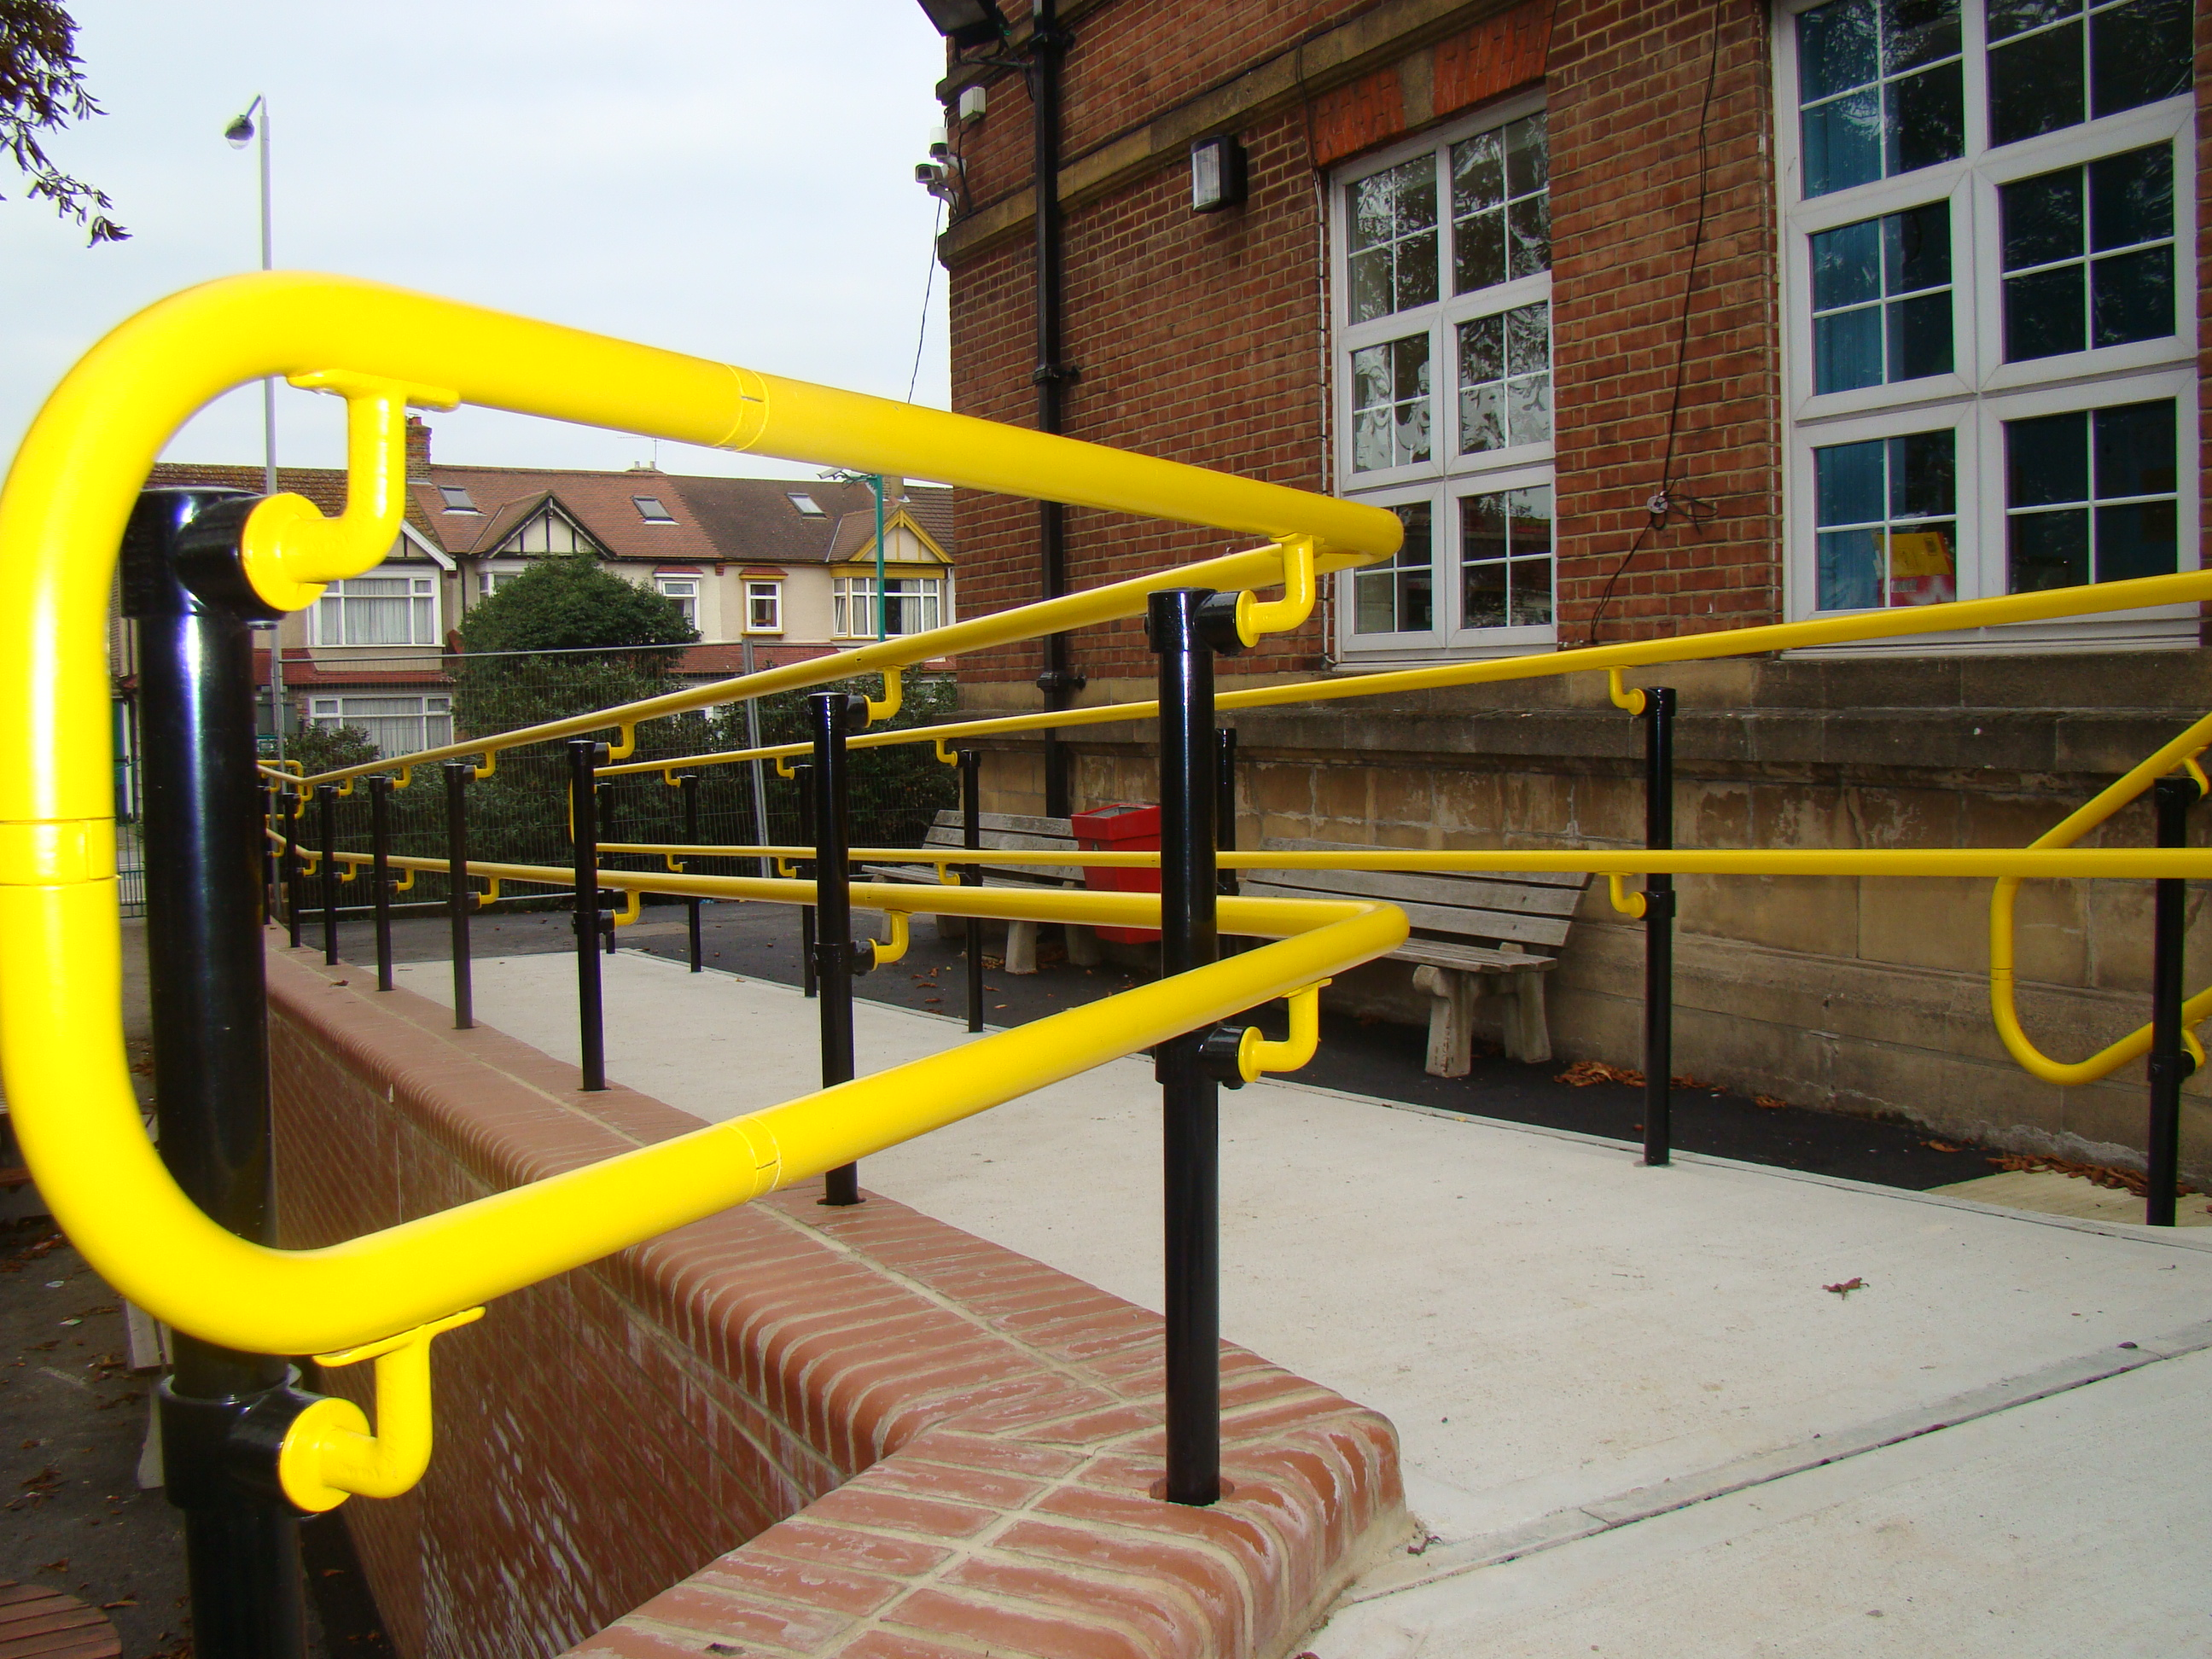 Visually contrasting handrail